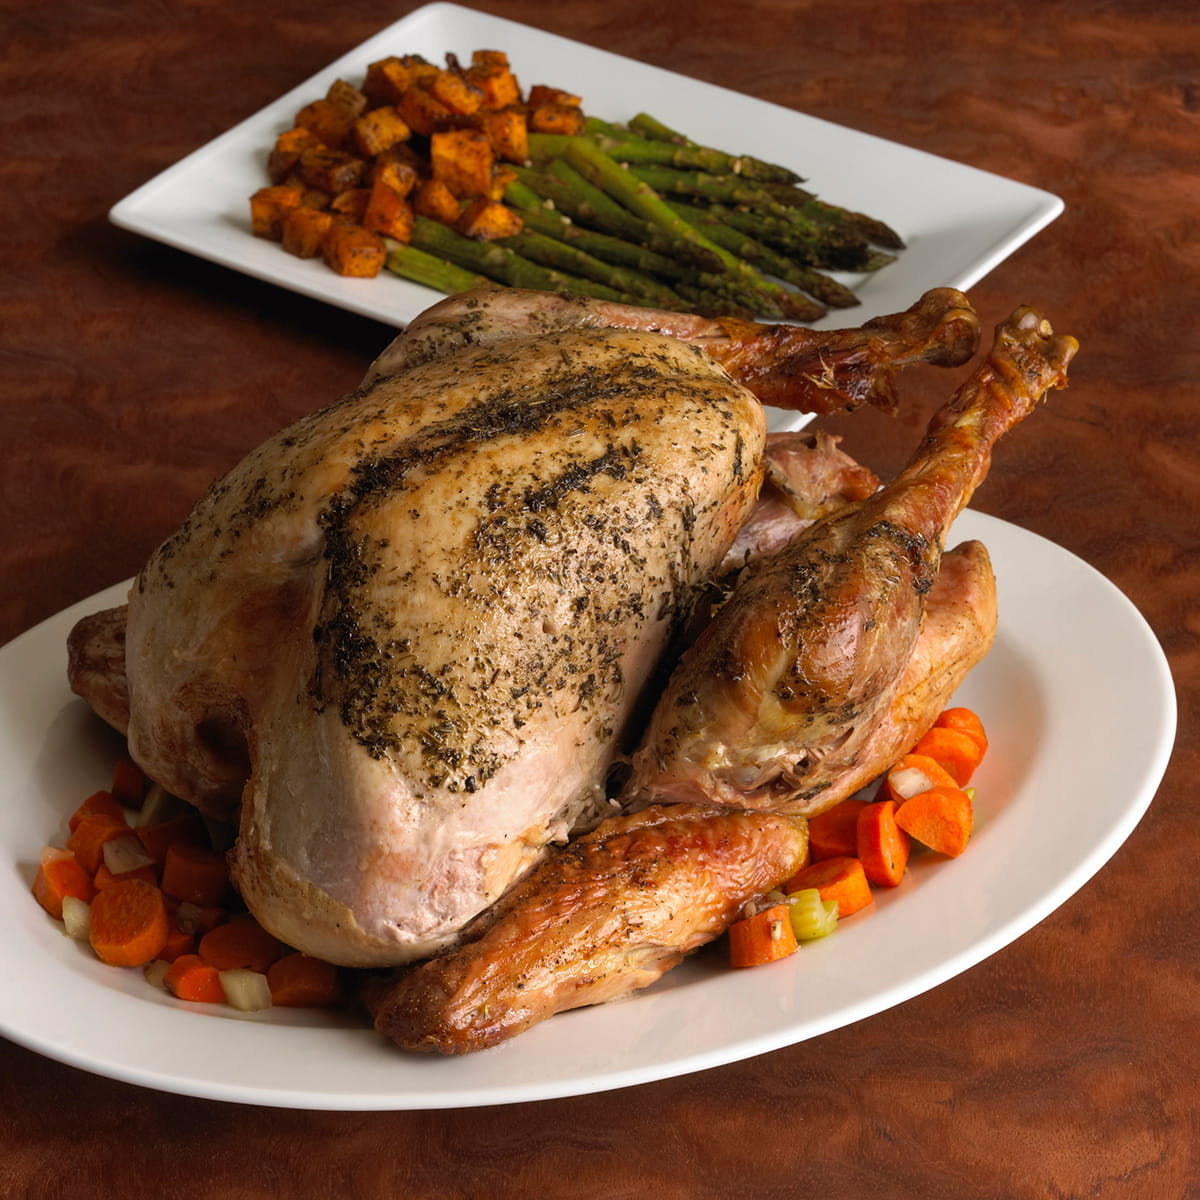 Mom's Roasted Turkey with Butternut Squash and Asparagus